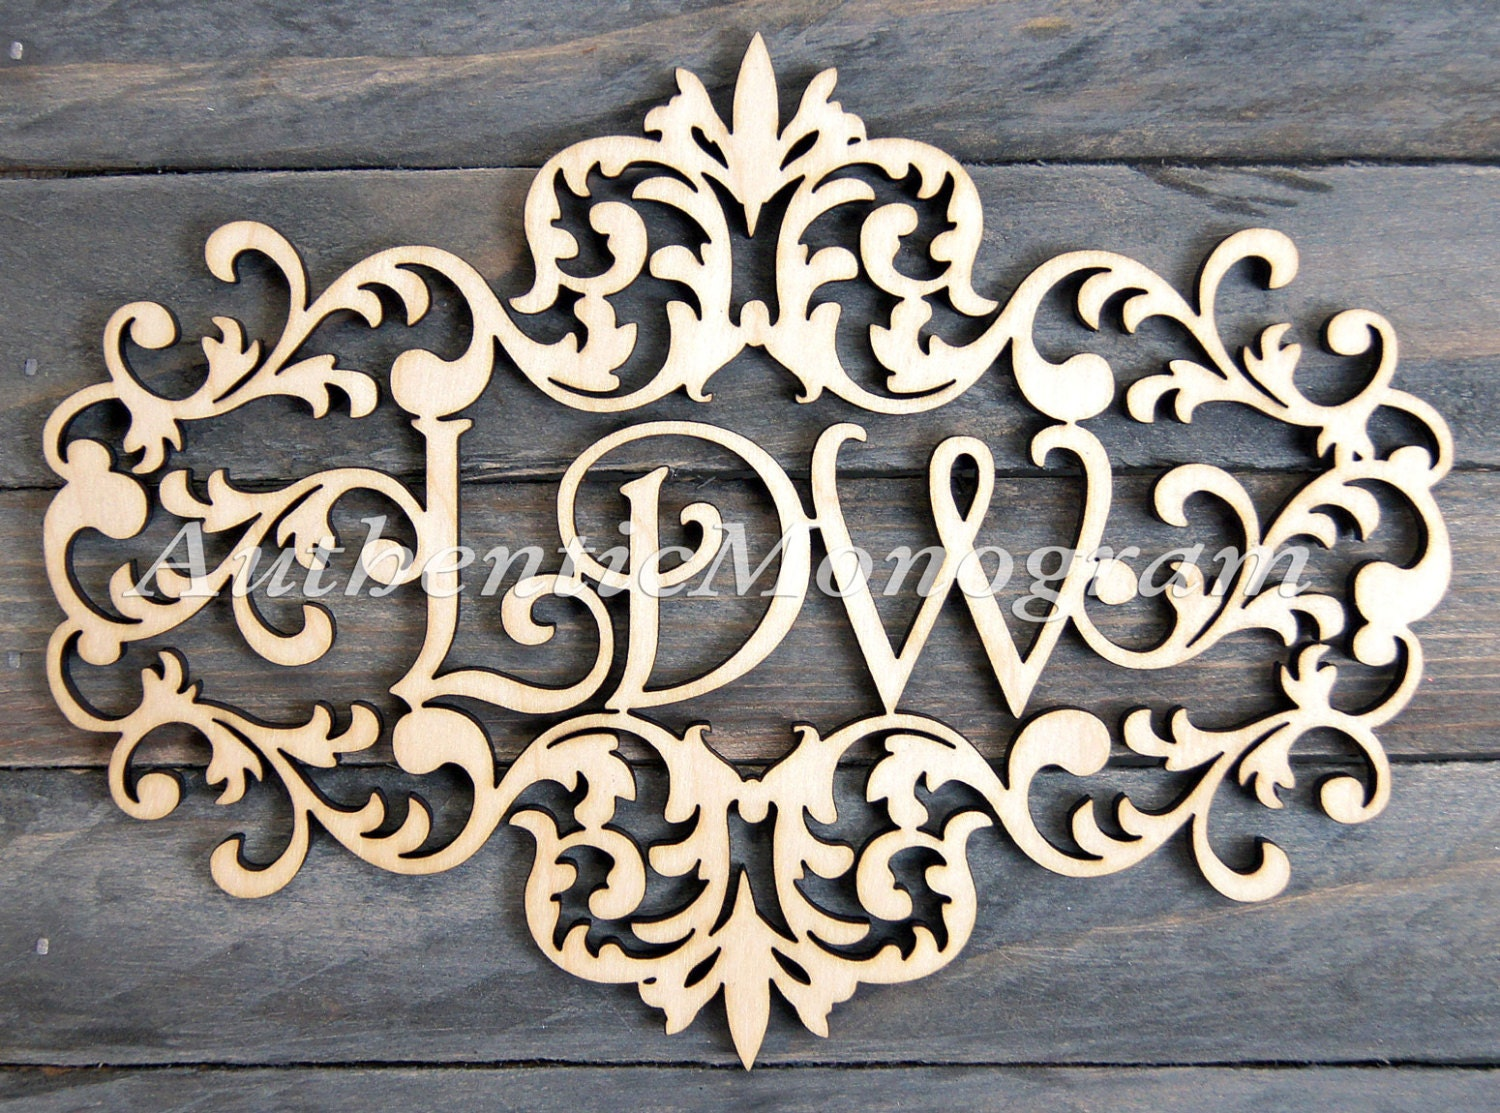 Personalized Gift Wooden Monogram   VICTORIAN FRAME MONOGRAM   Unpainted  Monogram   Home Decor   Wedding Monogram   Door Hanger   Wedding